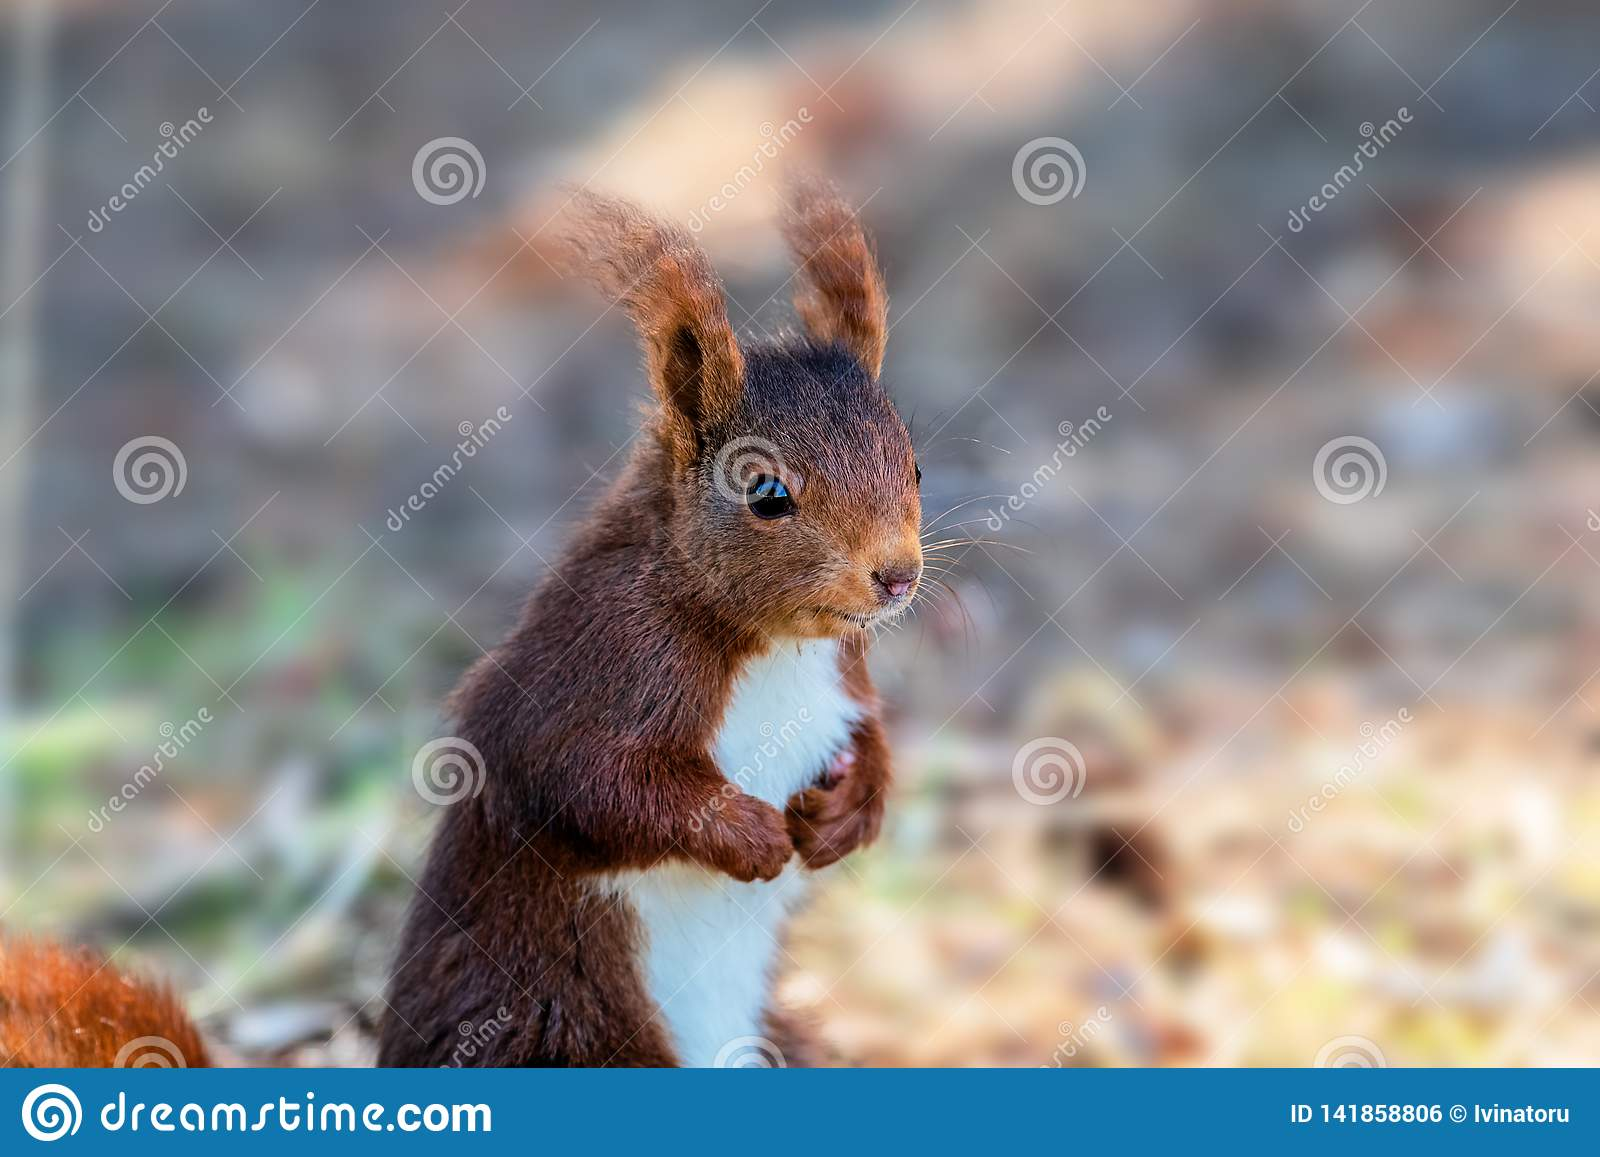 Close up red squirrel sitting in a natural park